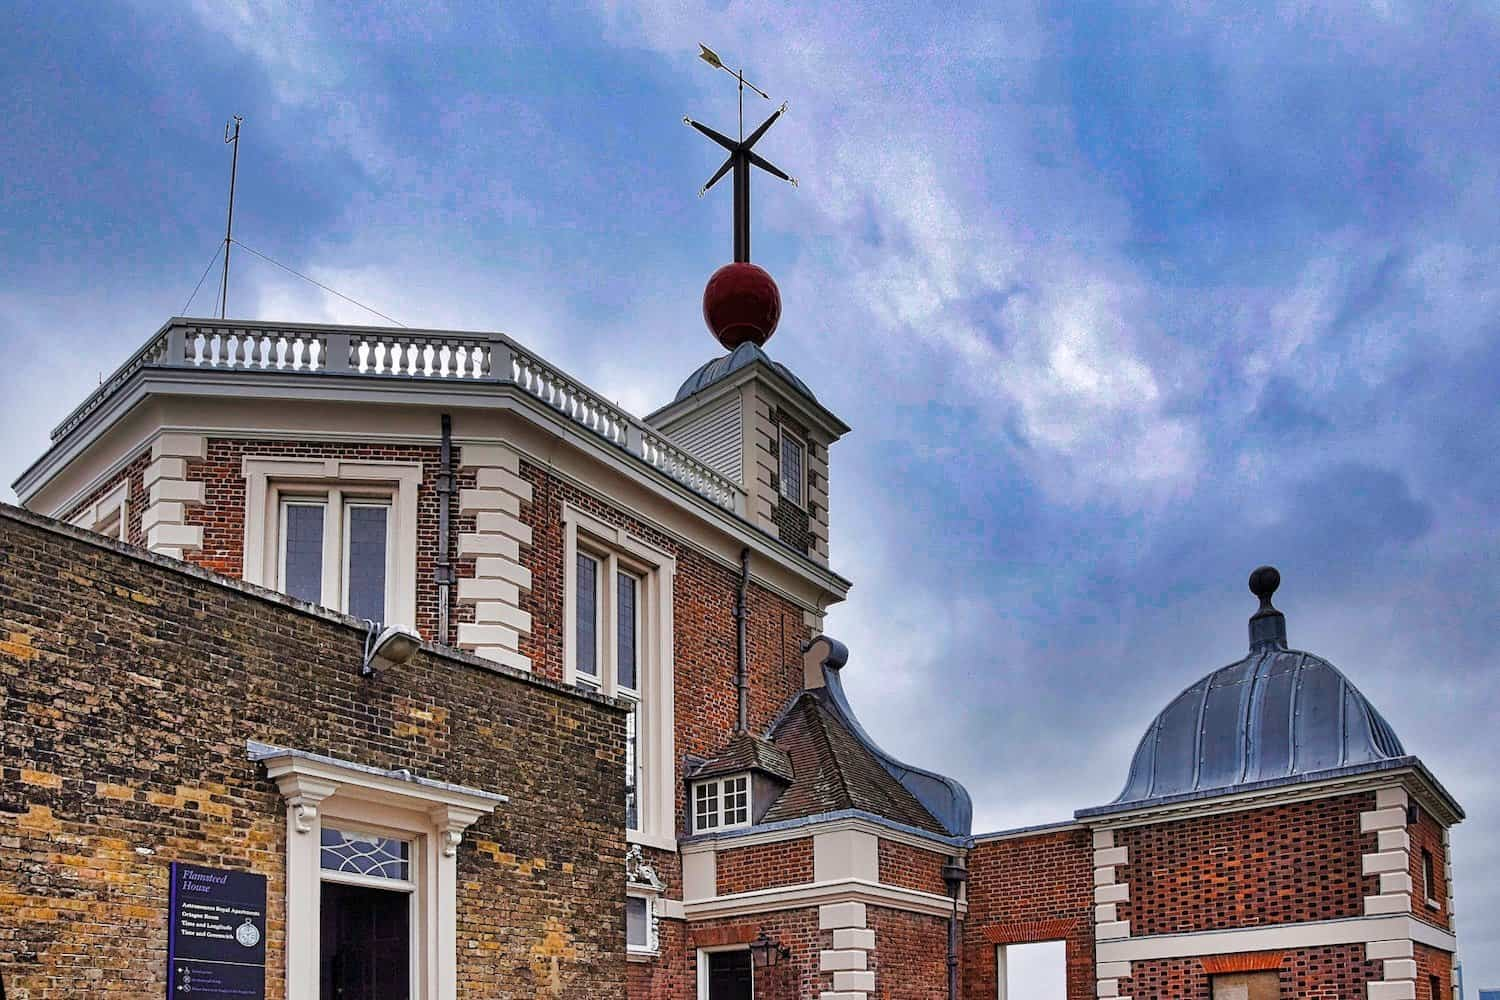 Royal Observatory Greenwich - Flamsteed House - David (MK)